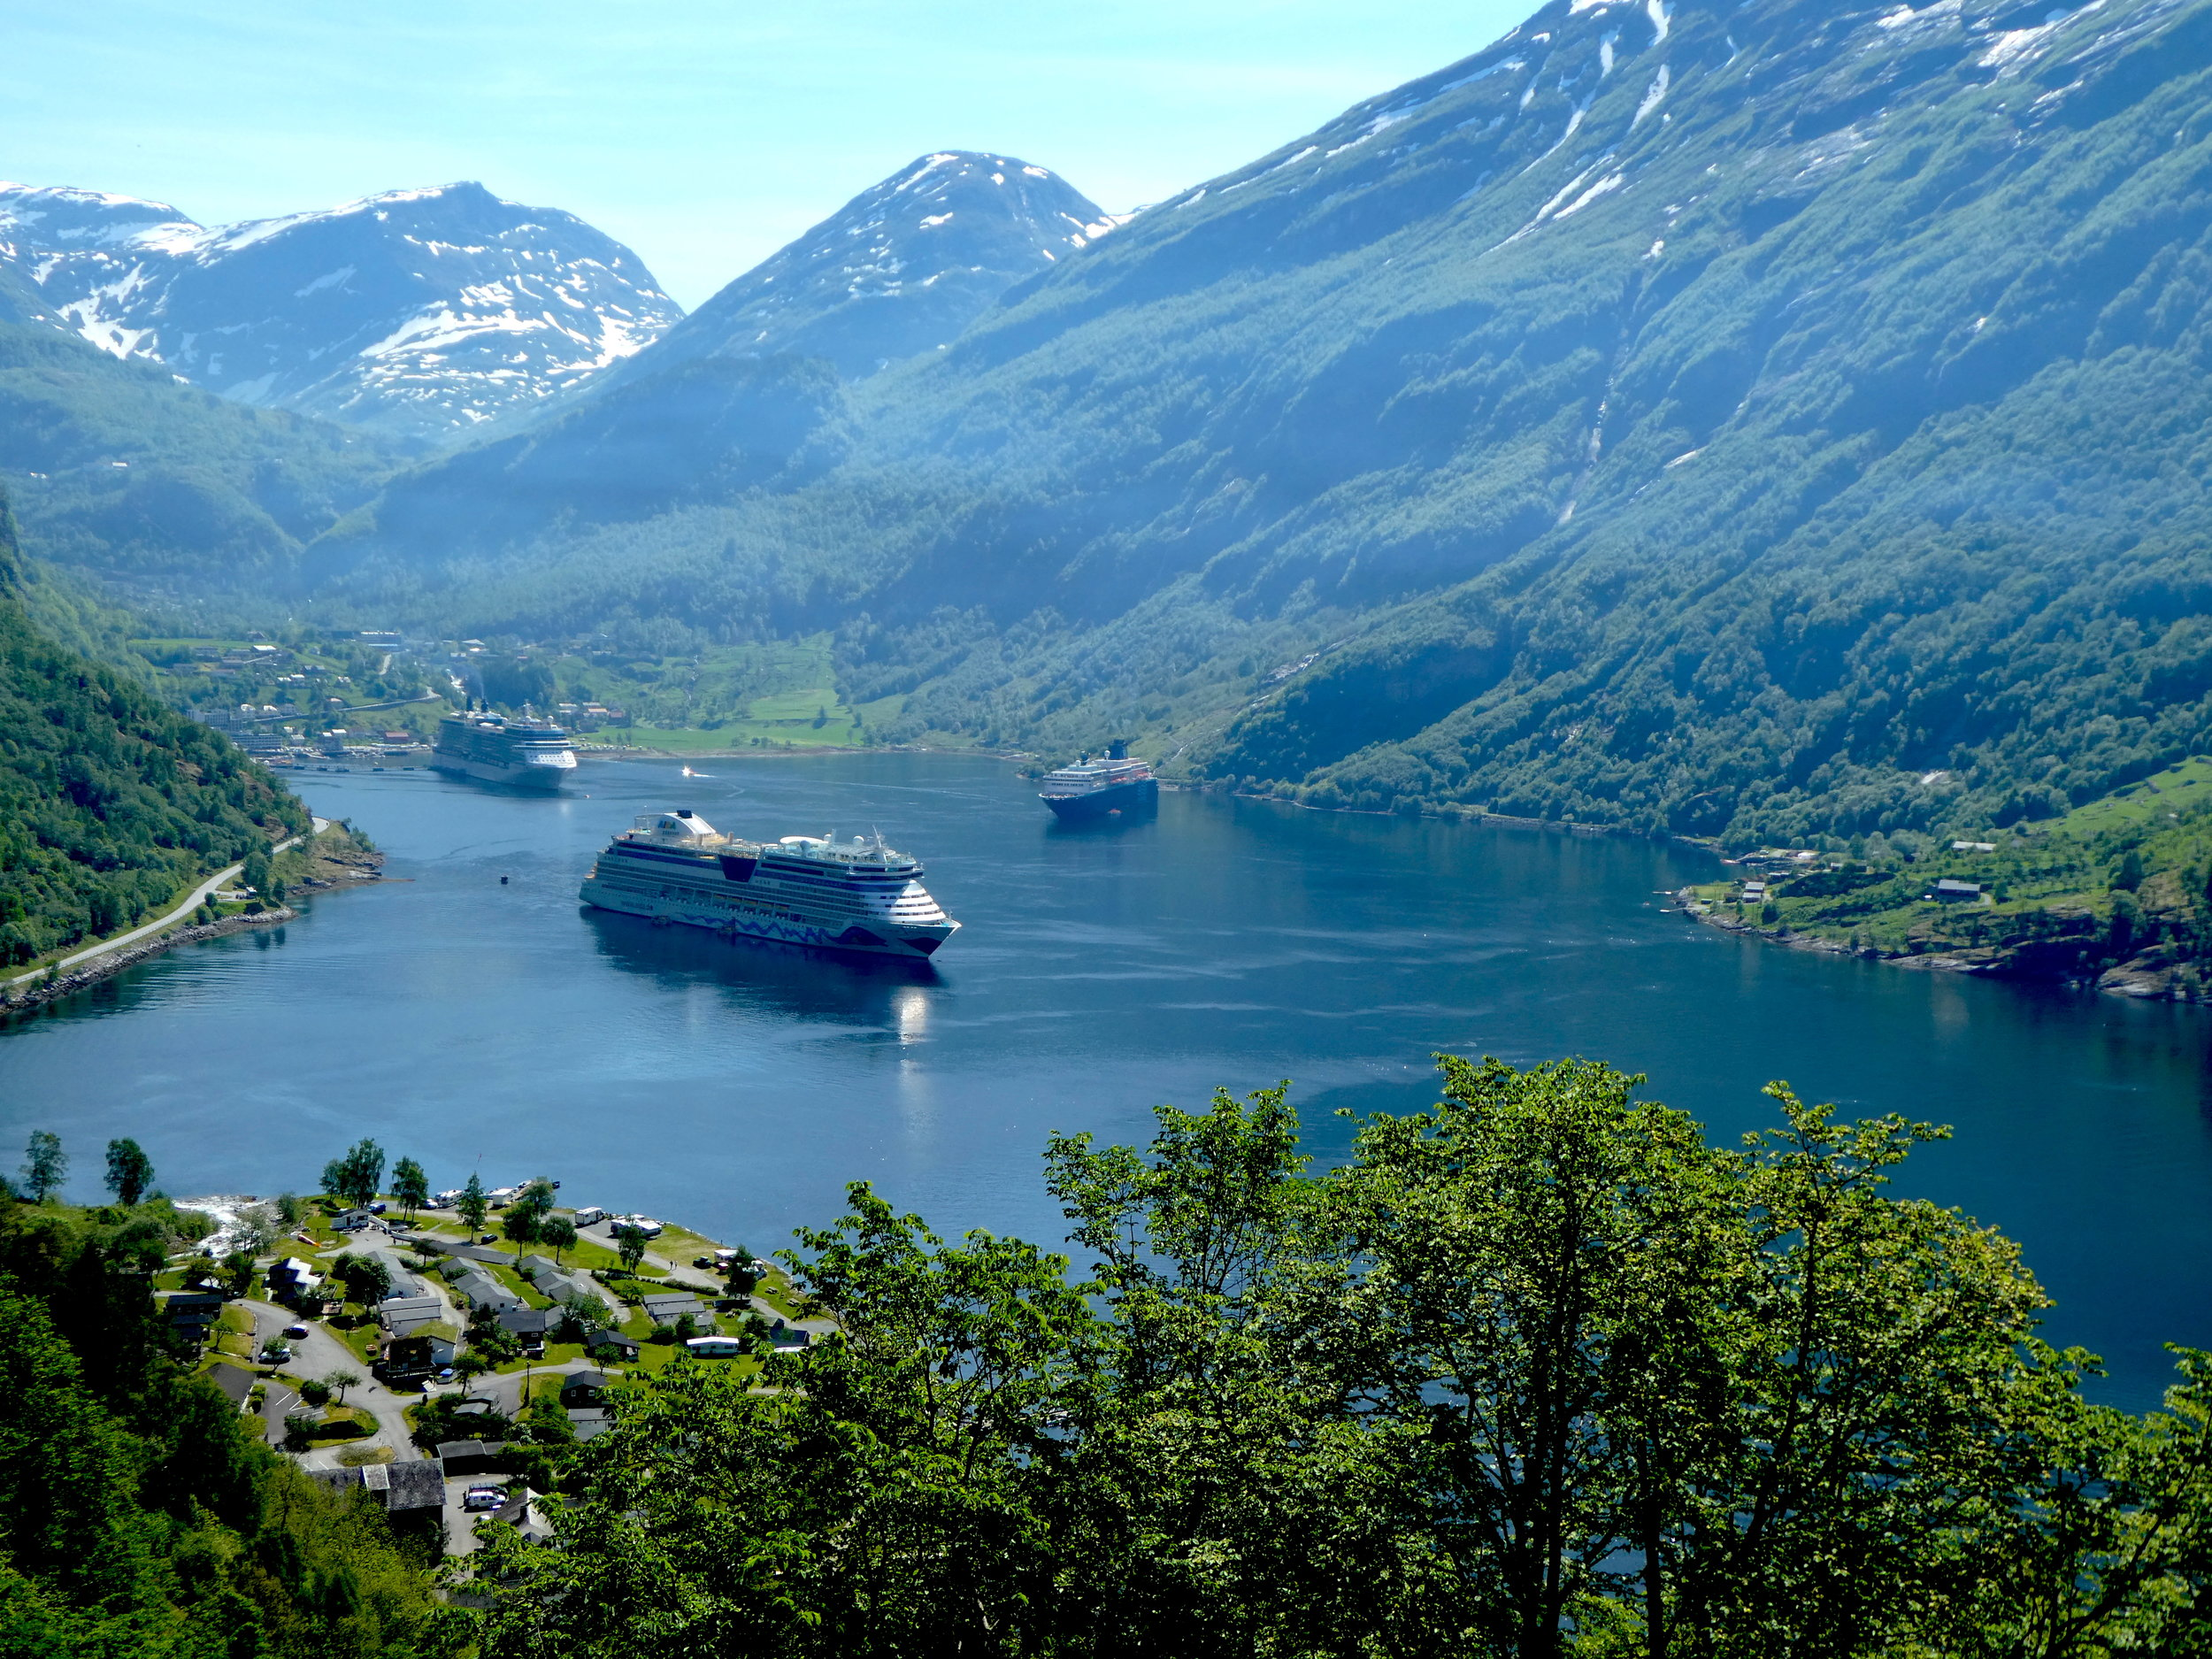 The iconic and narrow Geiranger fjord. Beautiful but choked with cruise ships.